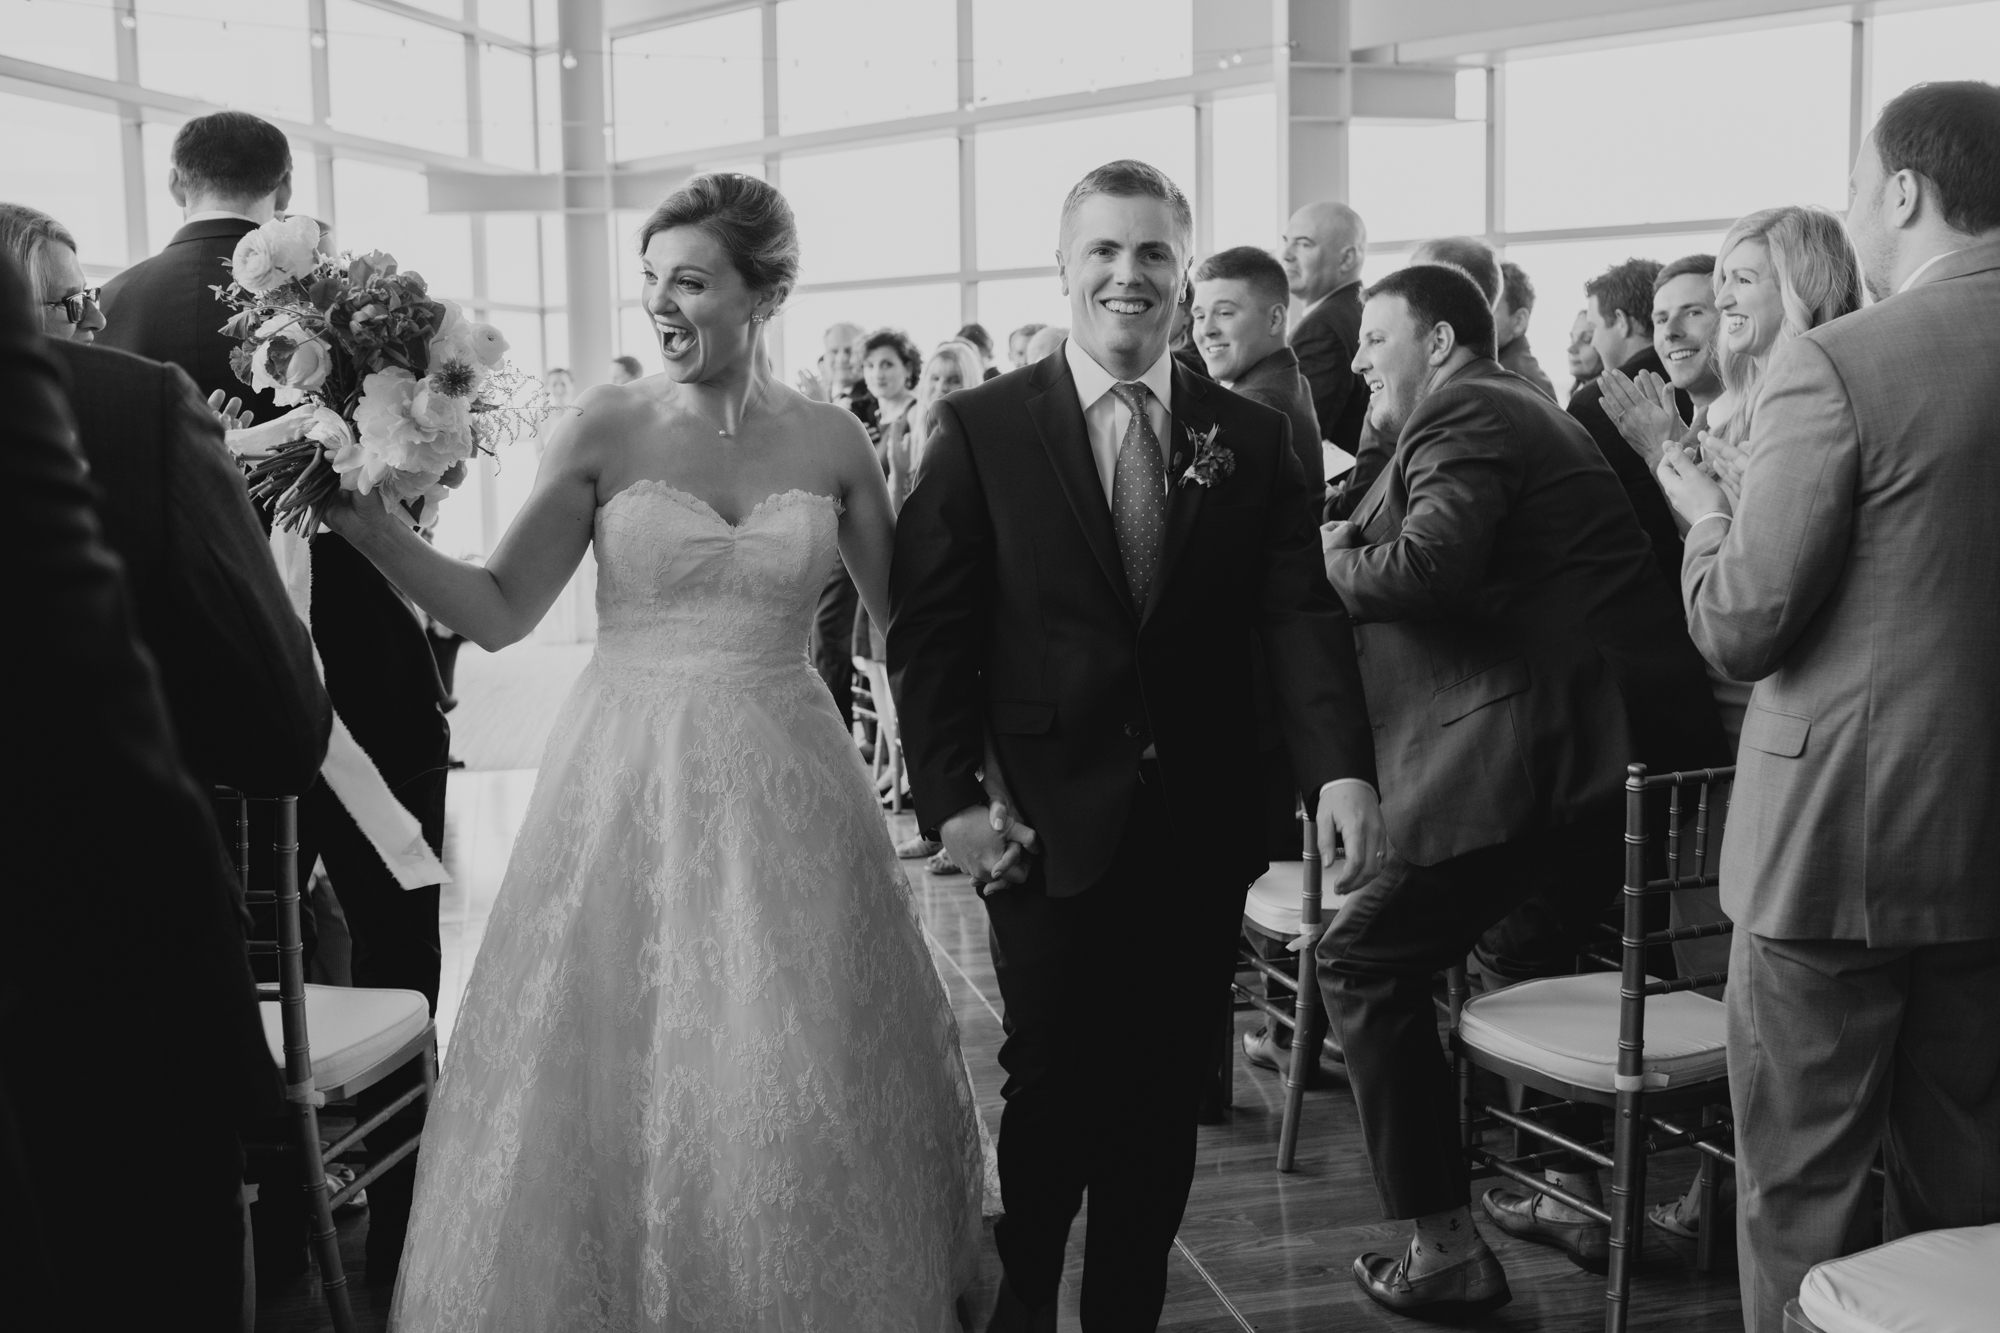 Kara_Jamie_Ocean_gateway_wedding_portland_maine_013.jpg